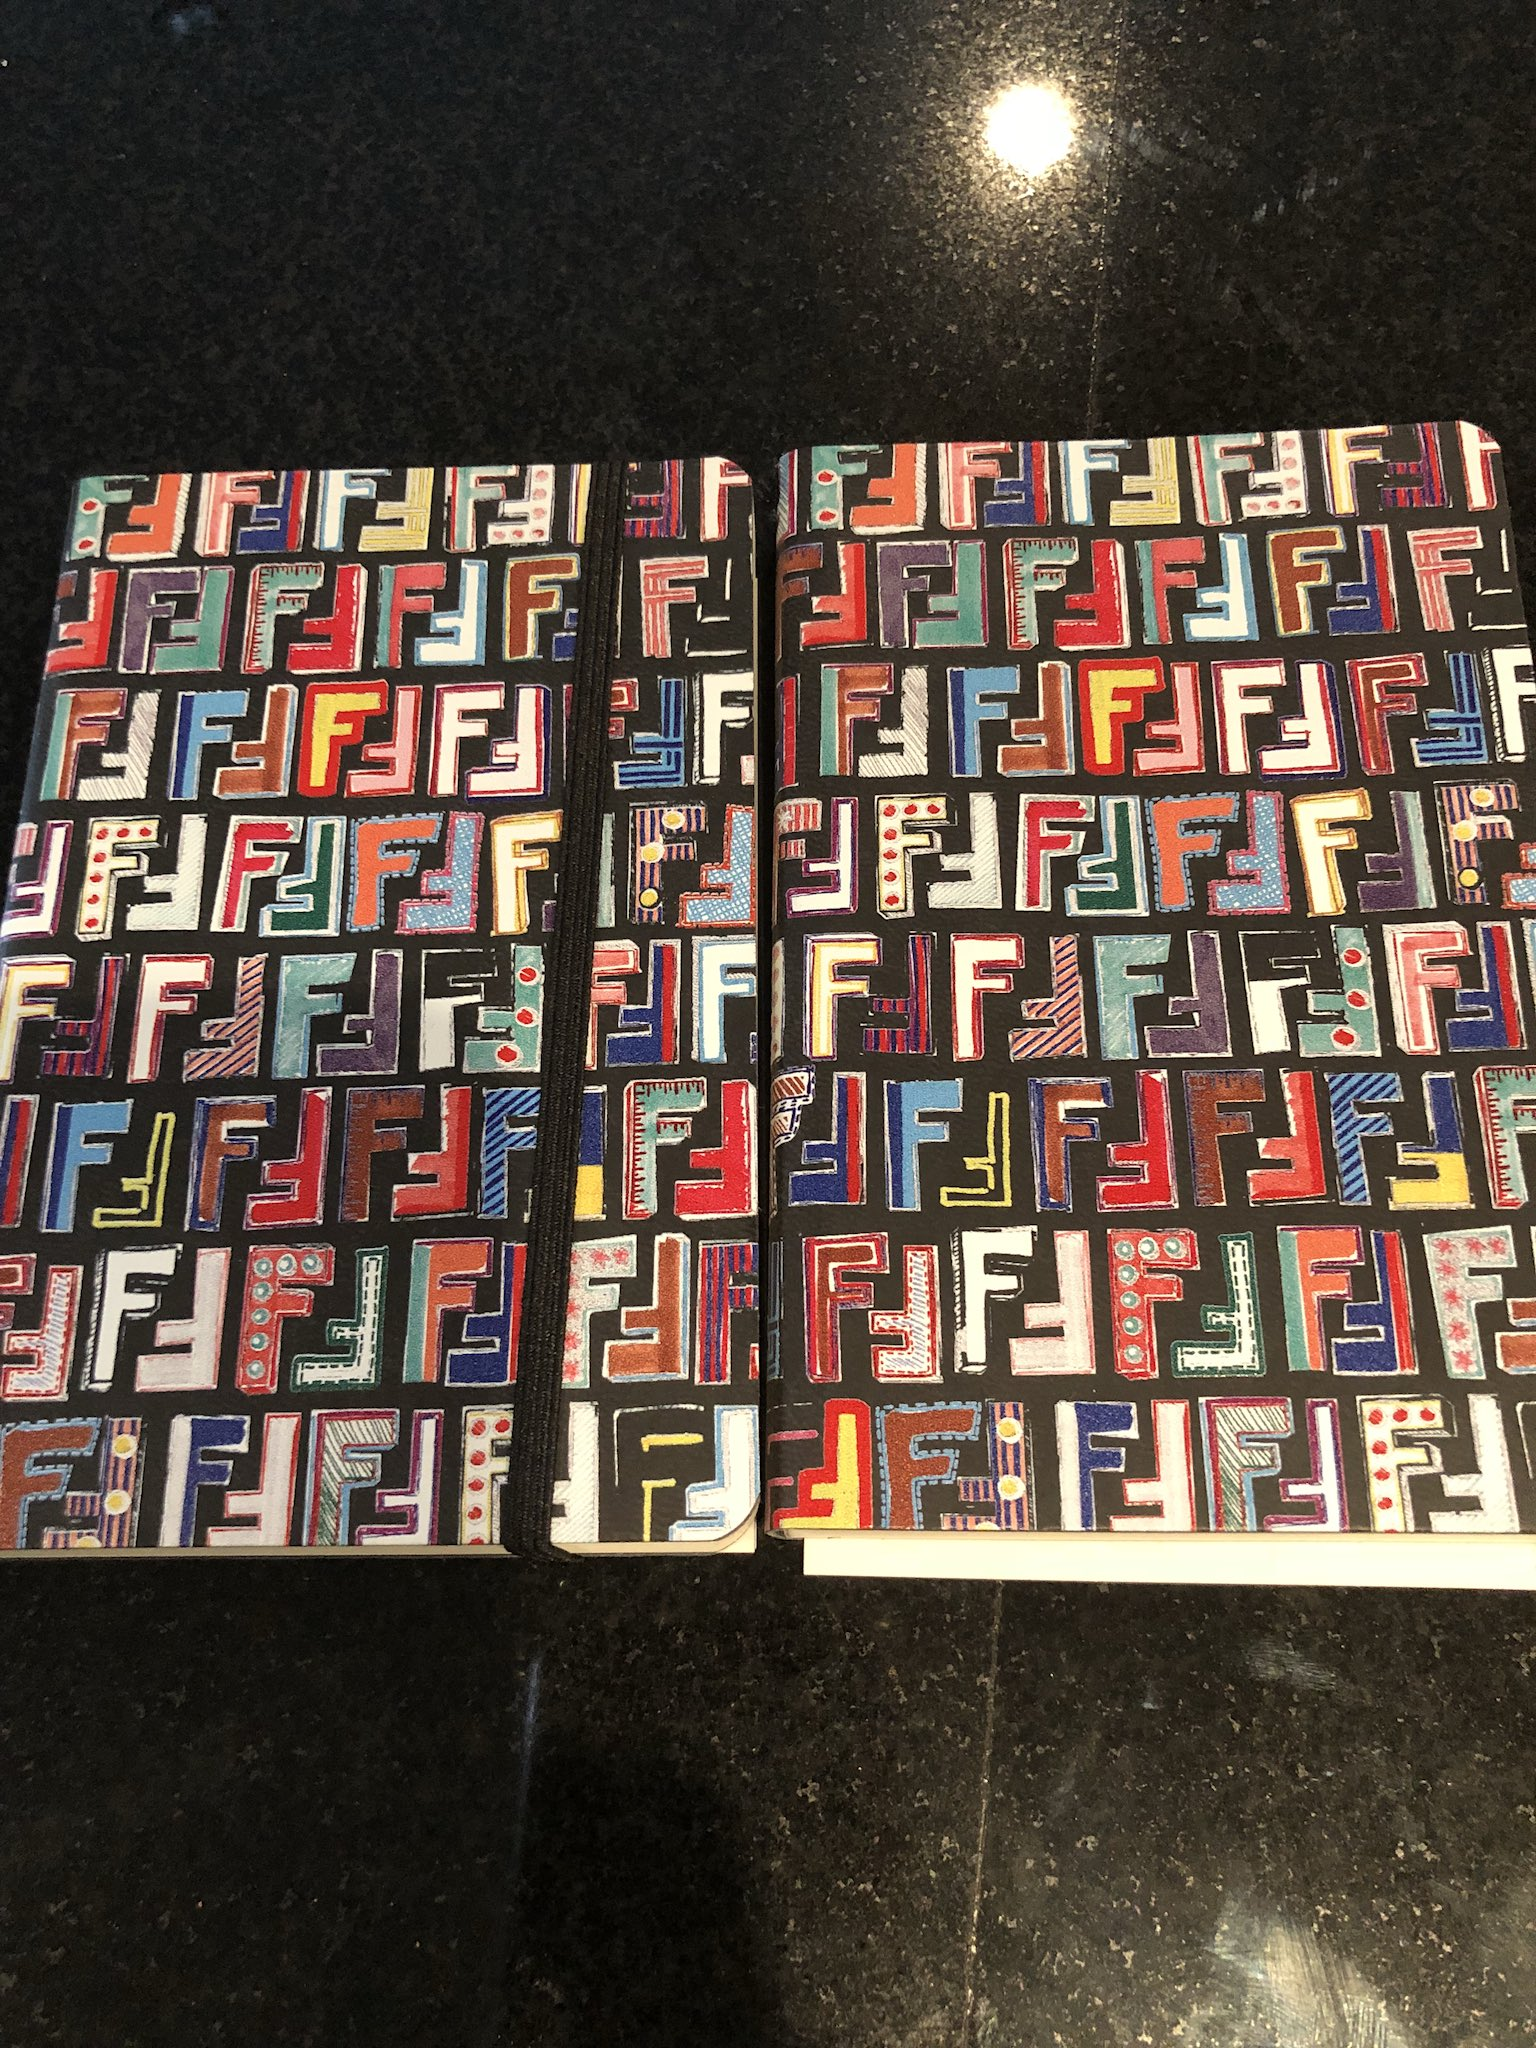 Thank u @Fendi for my notebook to write my Quotes & Rhymes in��������✍�� https://t.co/3az3EBjTIv